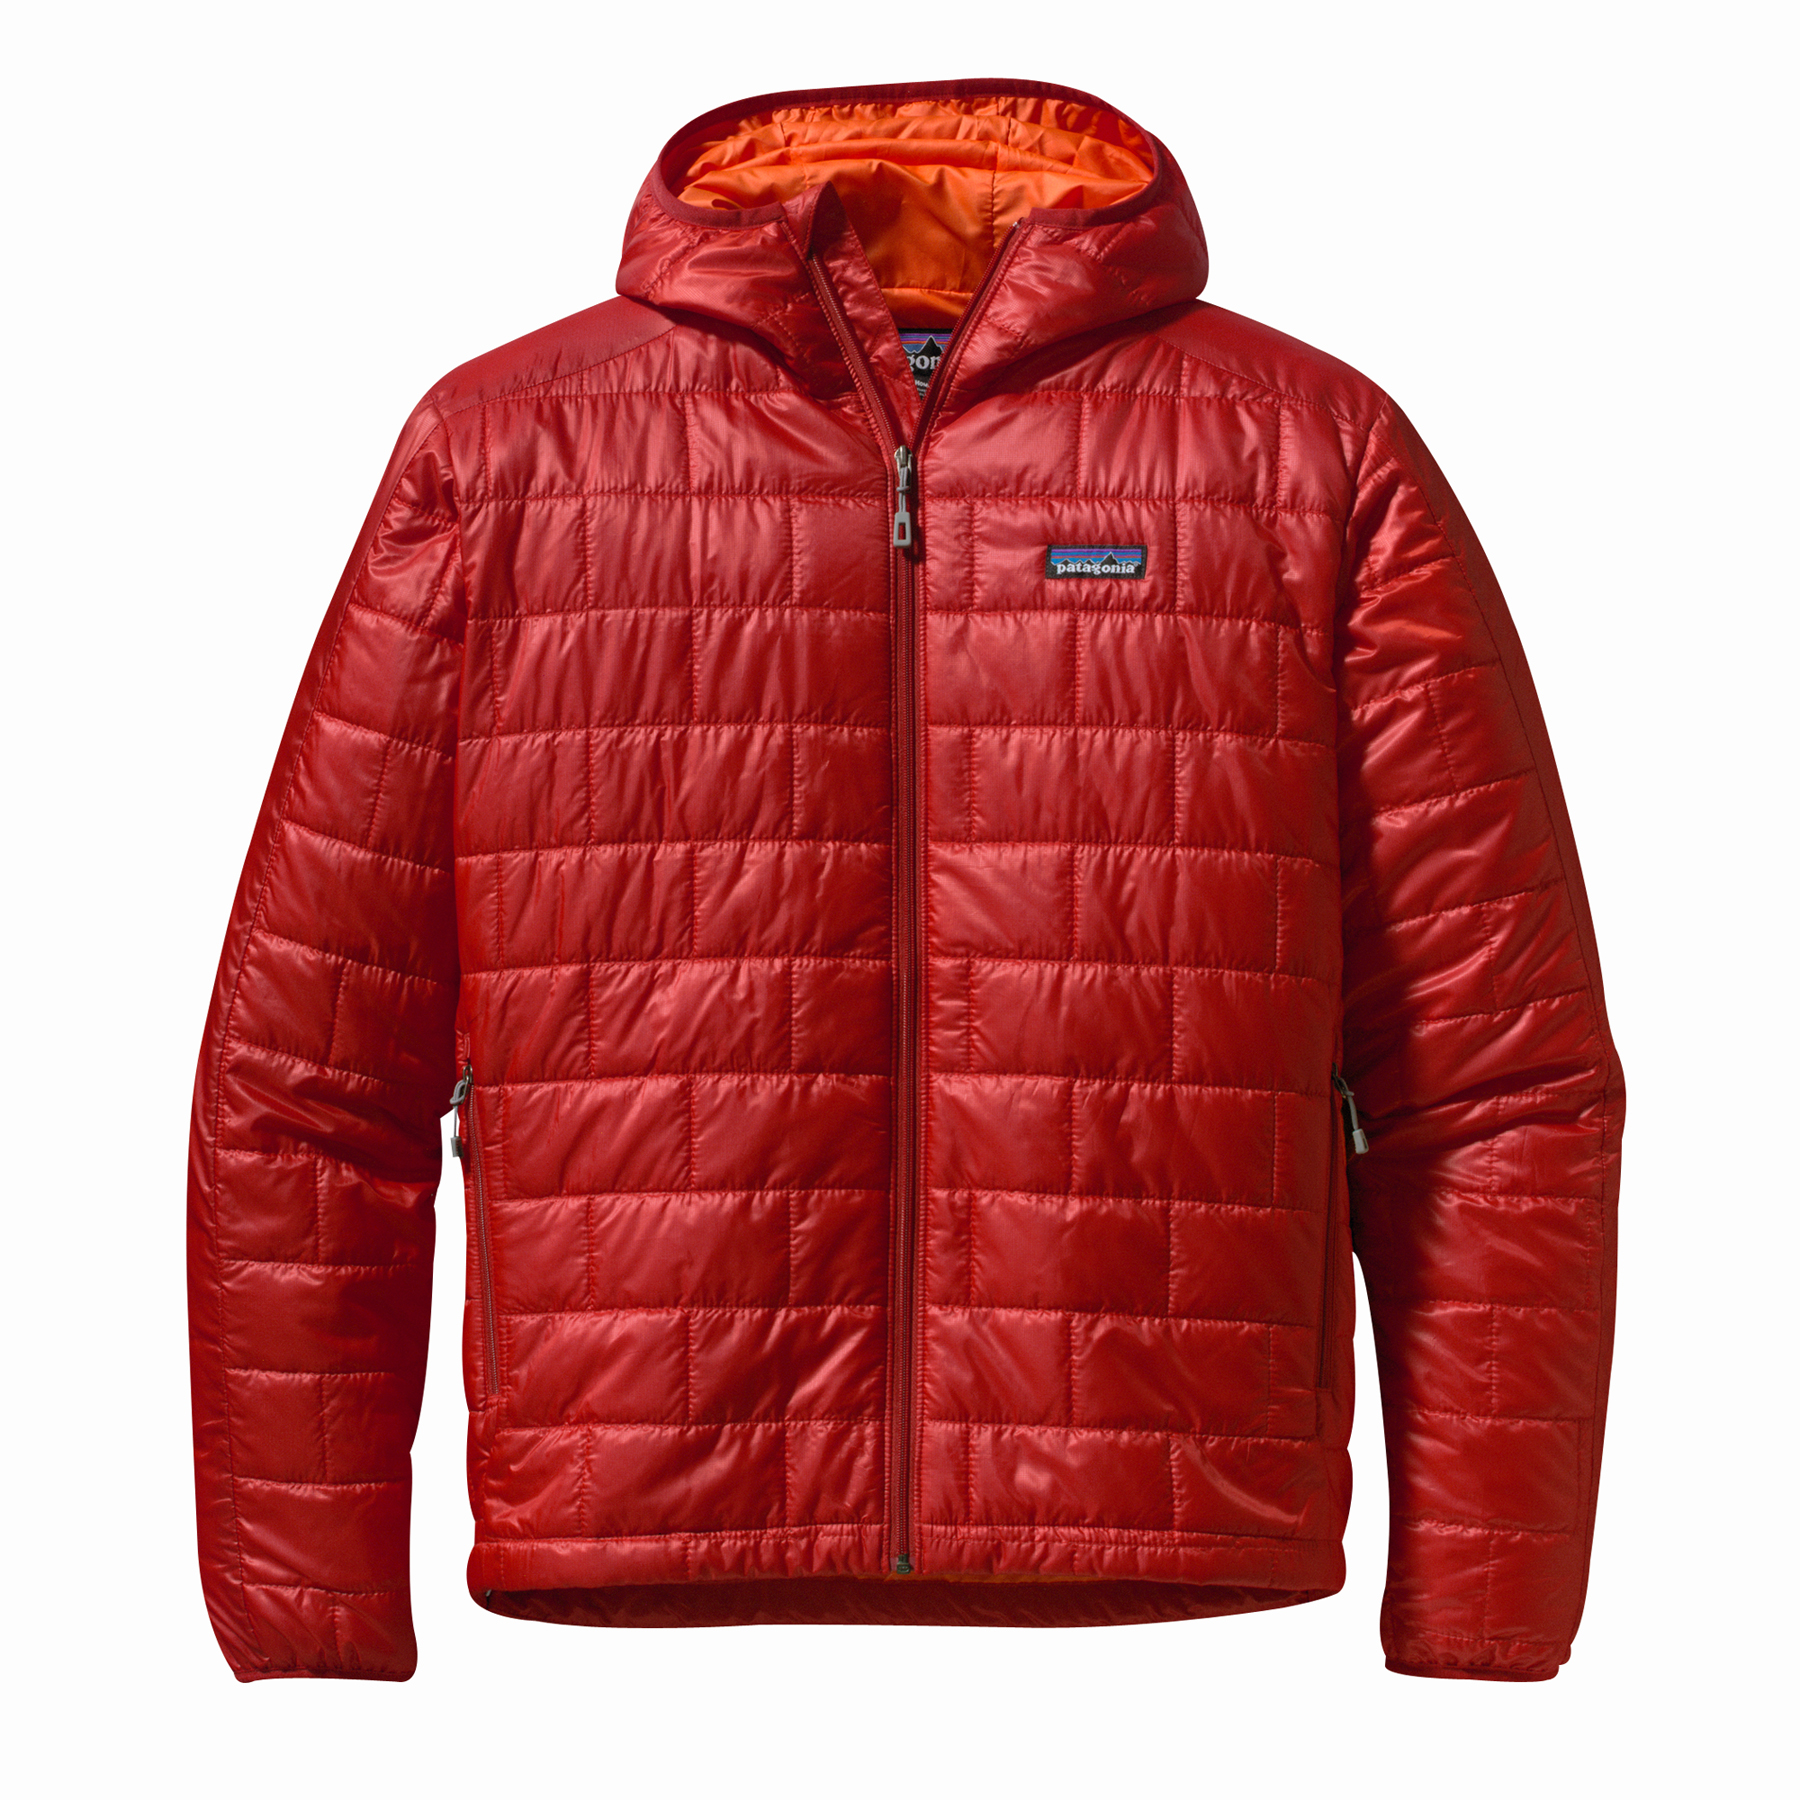 Mid Layers Patagonia Vs North Face Vs Rab Blister